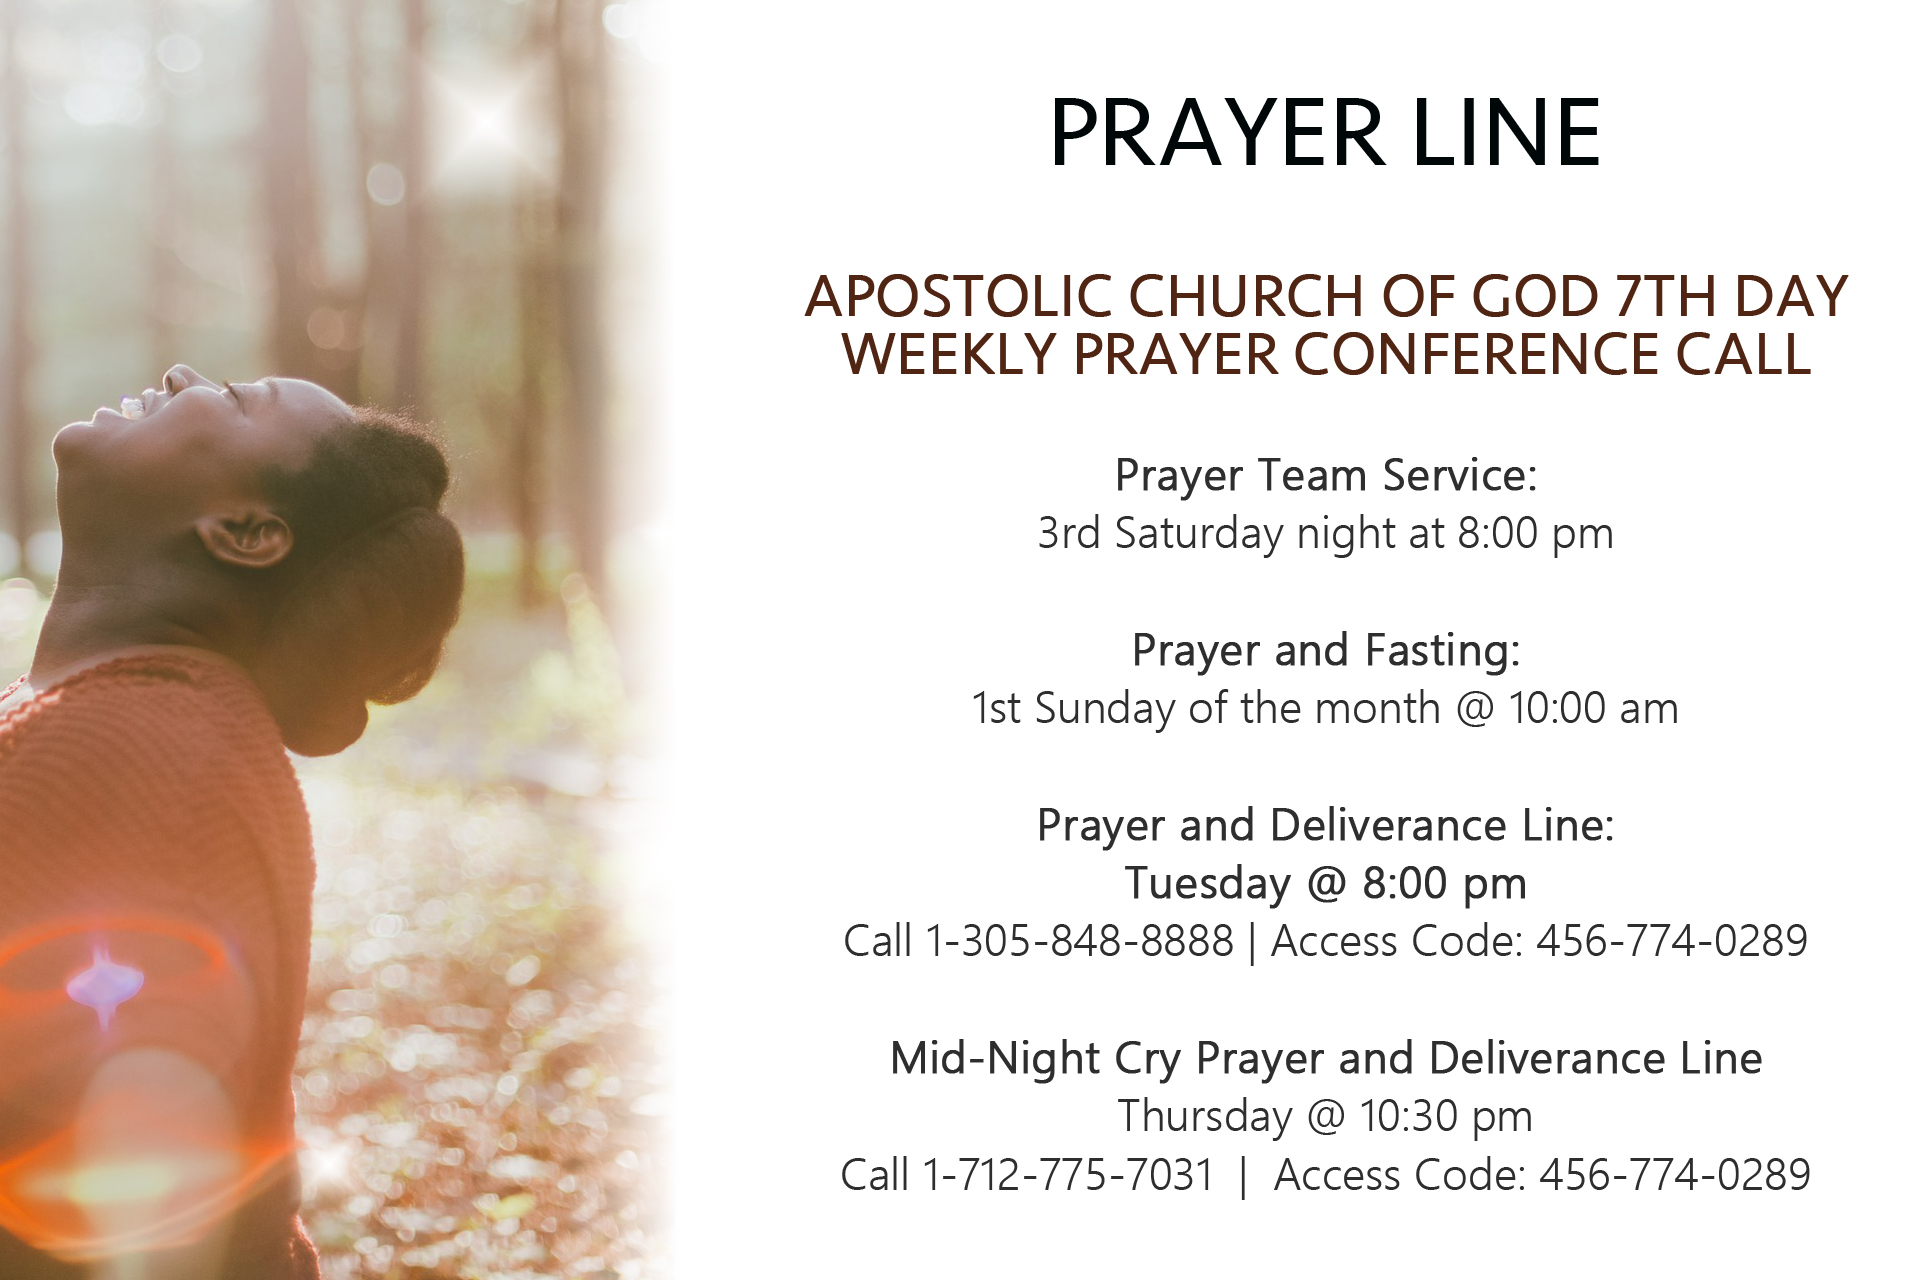 Apostolic Church of God 7th Day Prayer Ministry